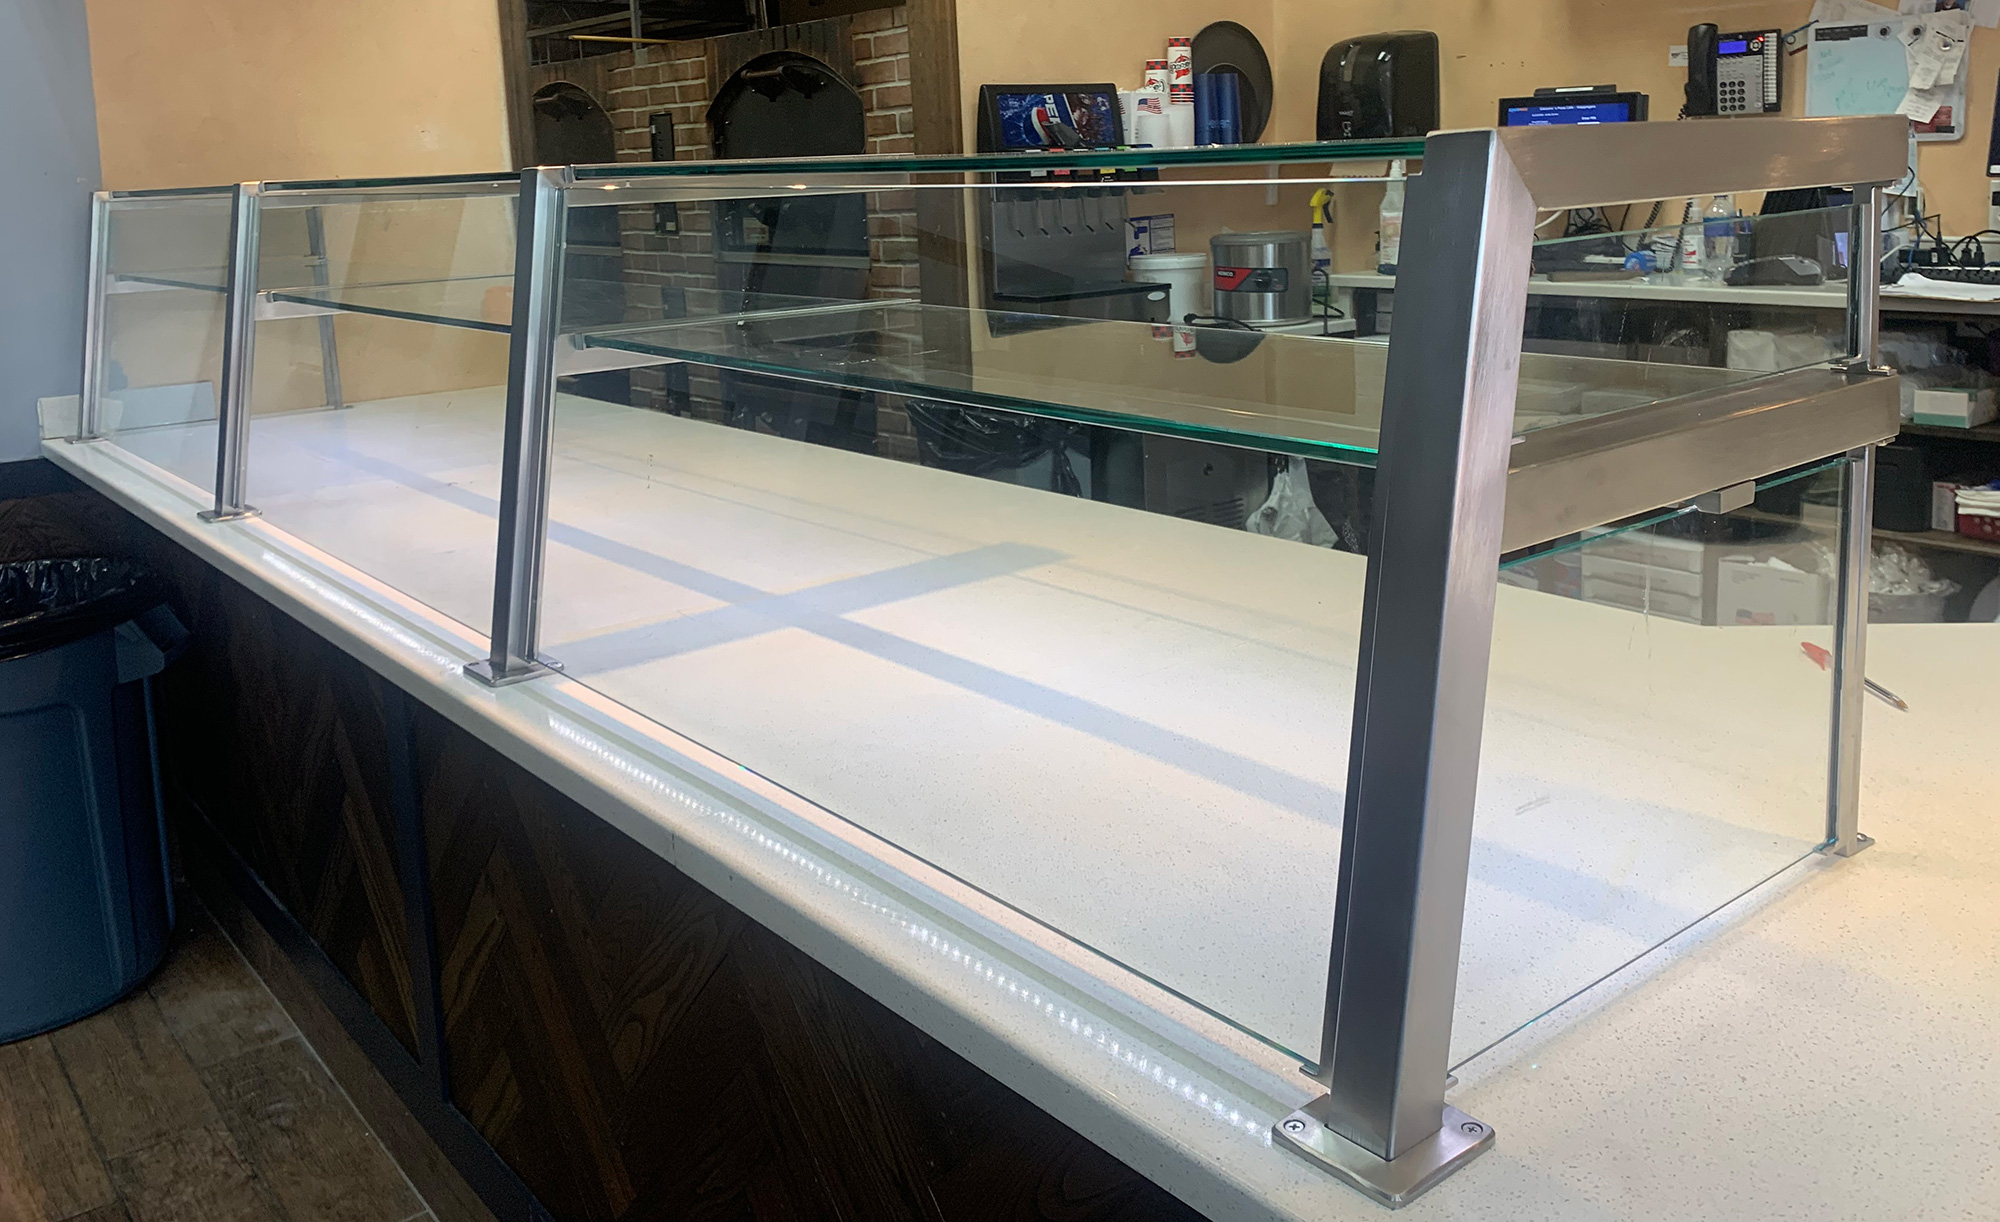 Satin Stainless Steel Food Shields with LED Lights - Giovanni's Pizza and Restaurant, Wappinger's Falls